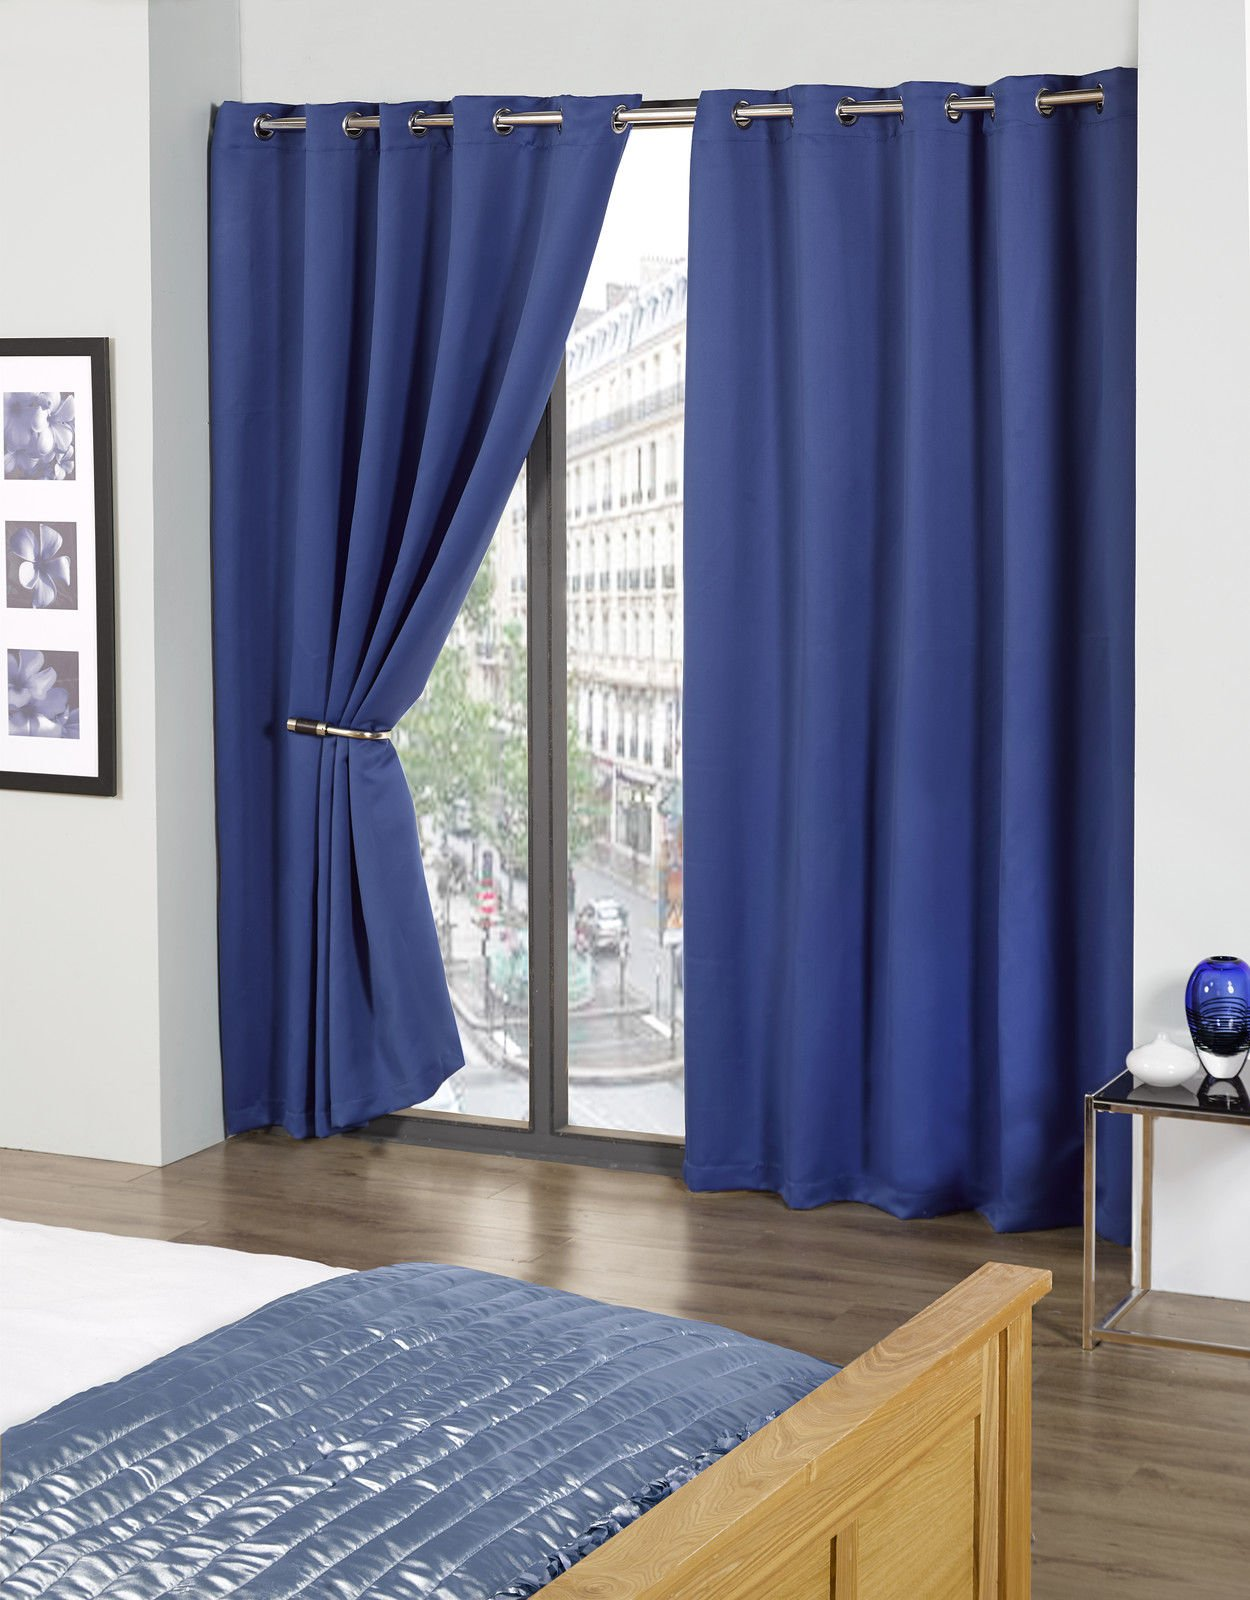 Cali Eyelet Ring Top Thermal Blackout Curtains Blue 90 Wide X 54 Drop